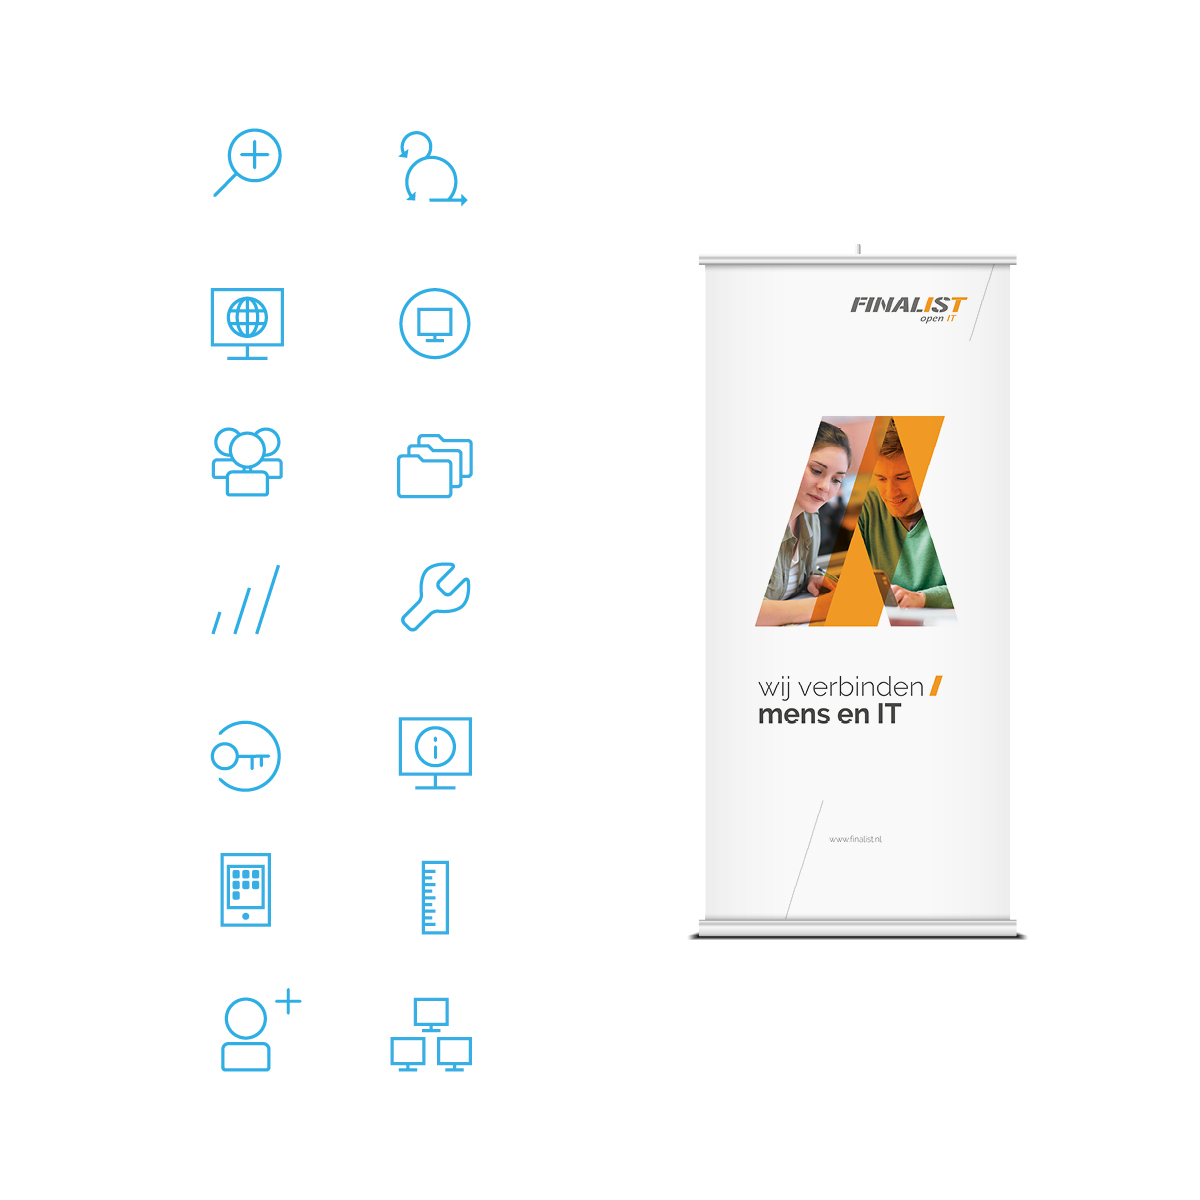 Finalist | Icons en Roll-up banner | Creative Digital Agency Puntkomma Nijmegen